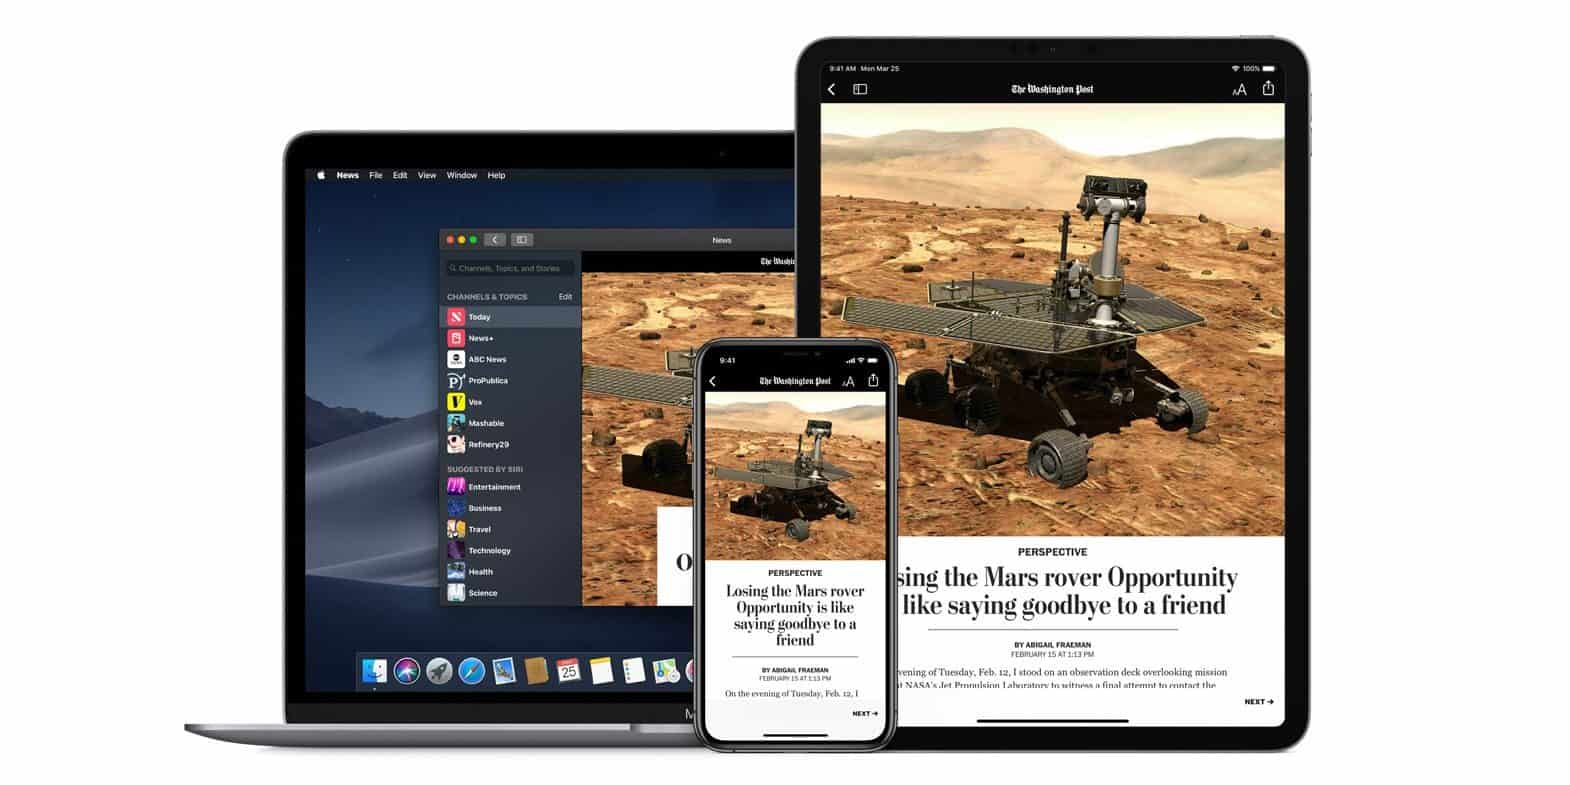 Apple News' Newest Feature is the Daily Email Newsletter